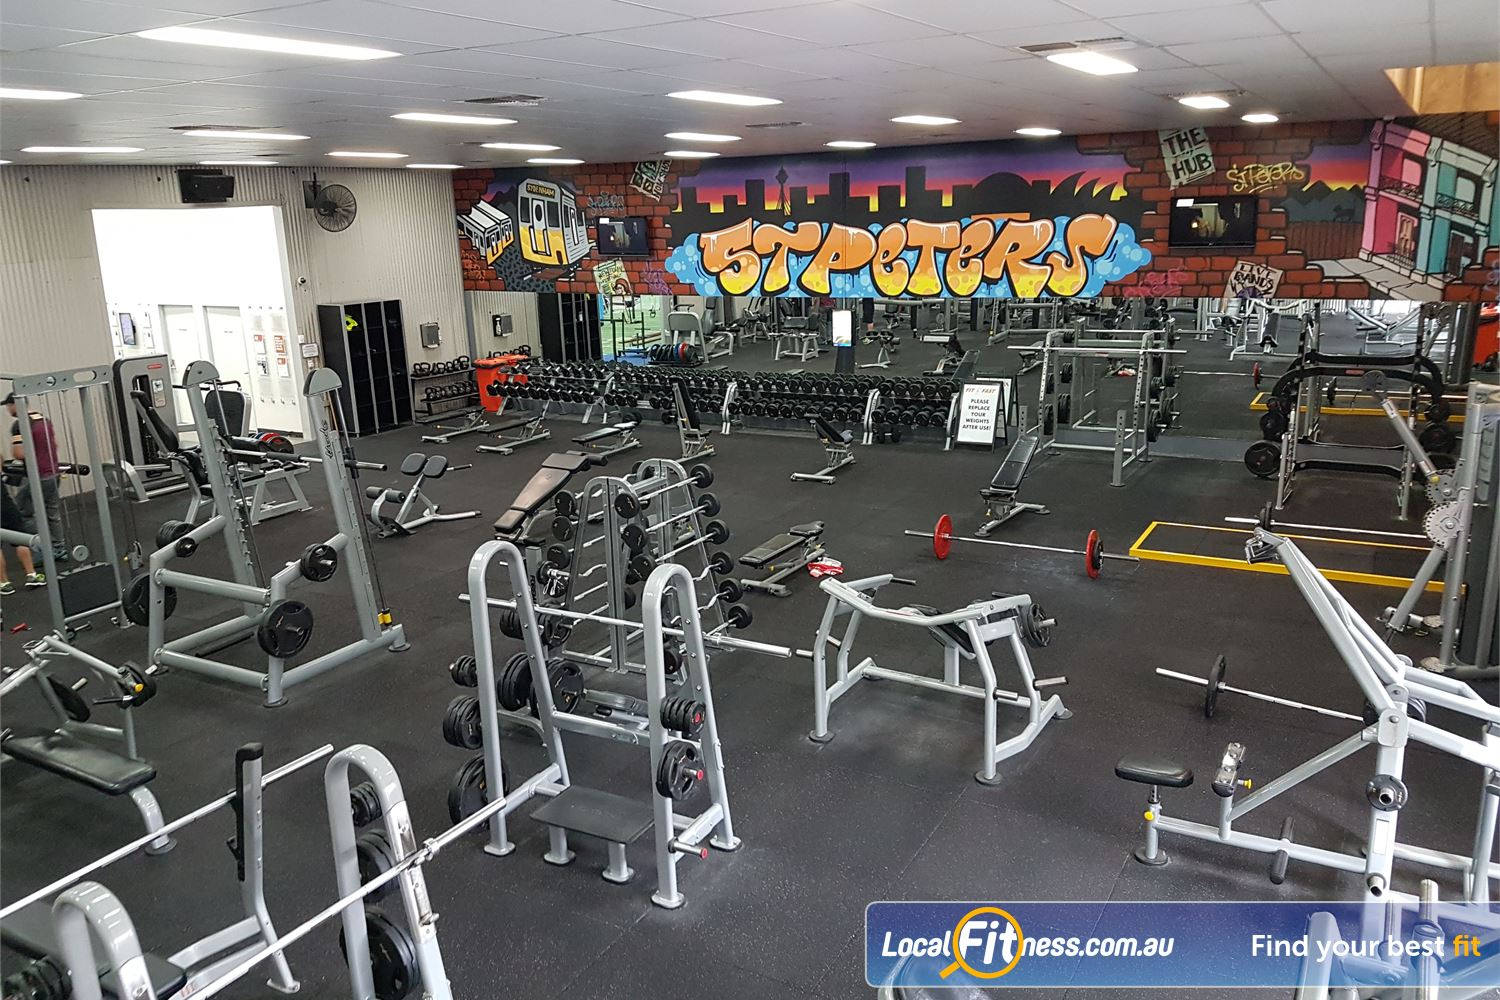 Fit n Fast St Peters Heavy duty plate-loading machines in our free-weights area.